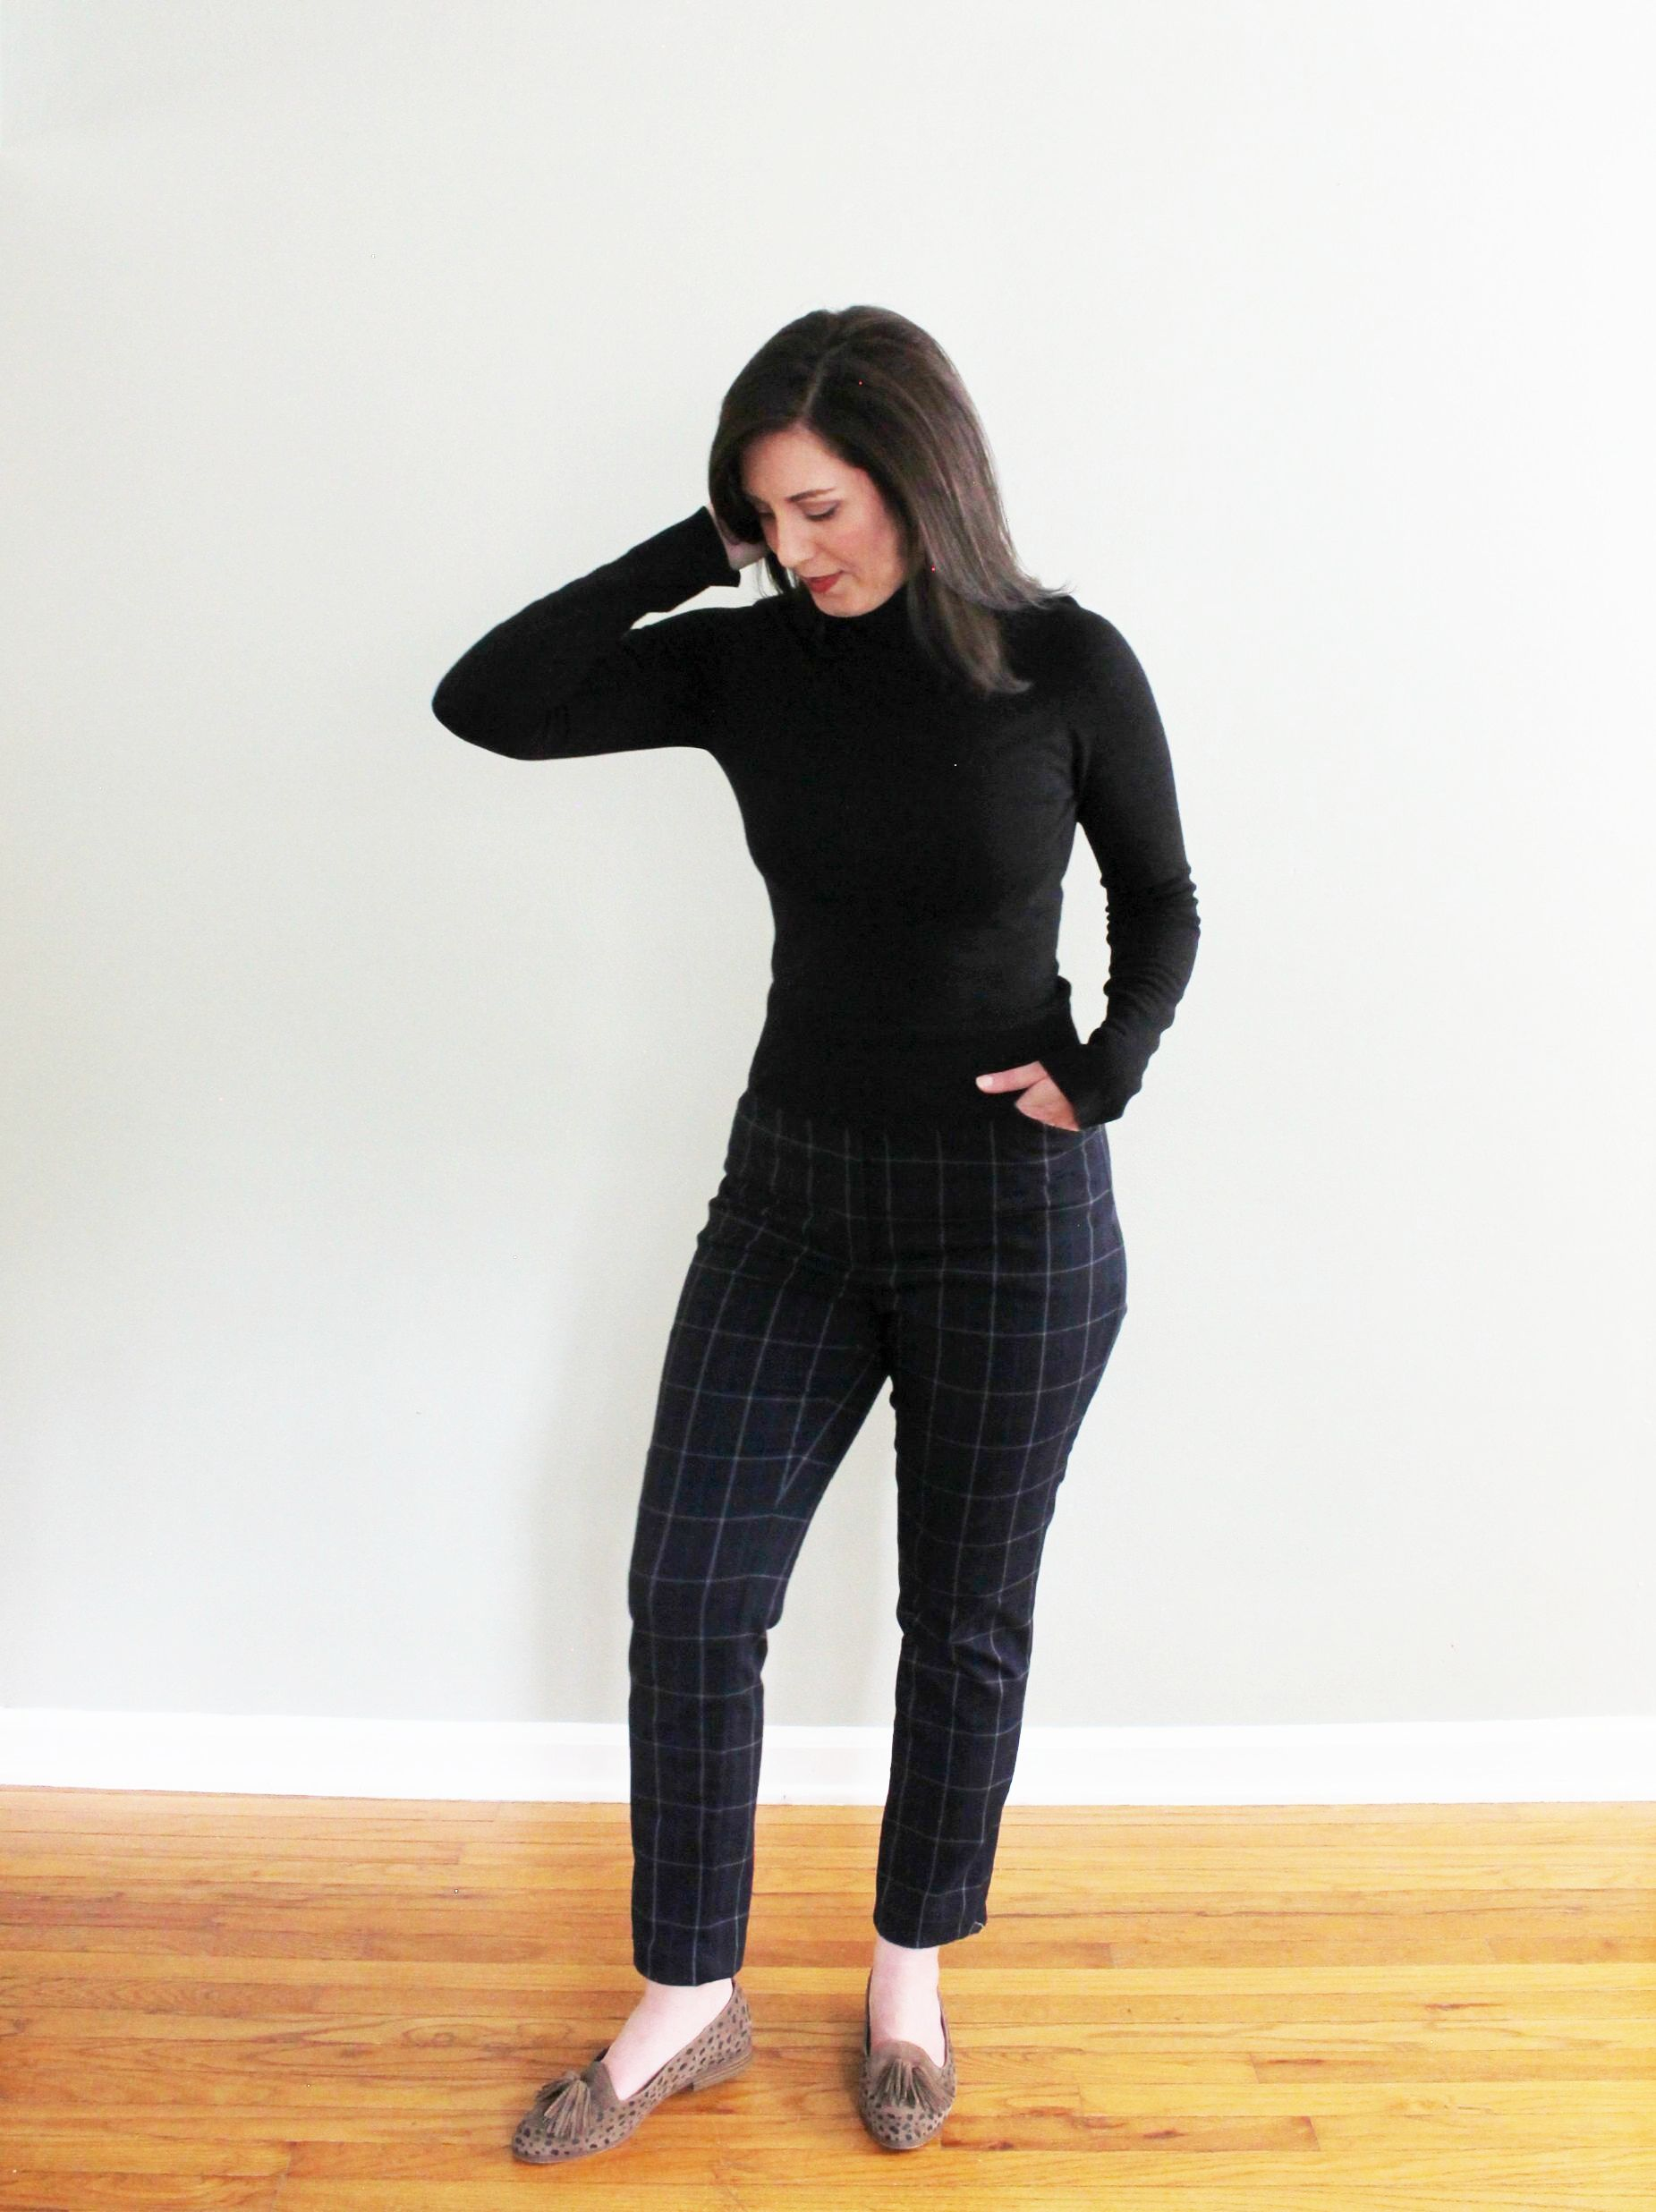 Sasha Trousers with an old RTW turtleneck that I've had for more than 10 years!